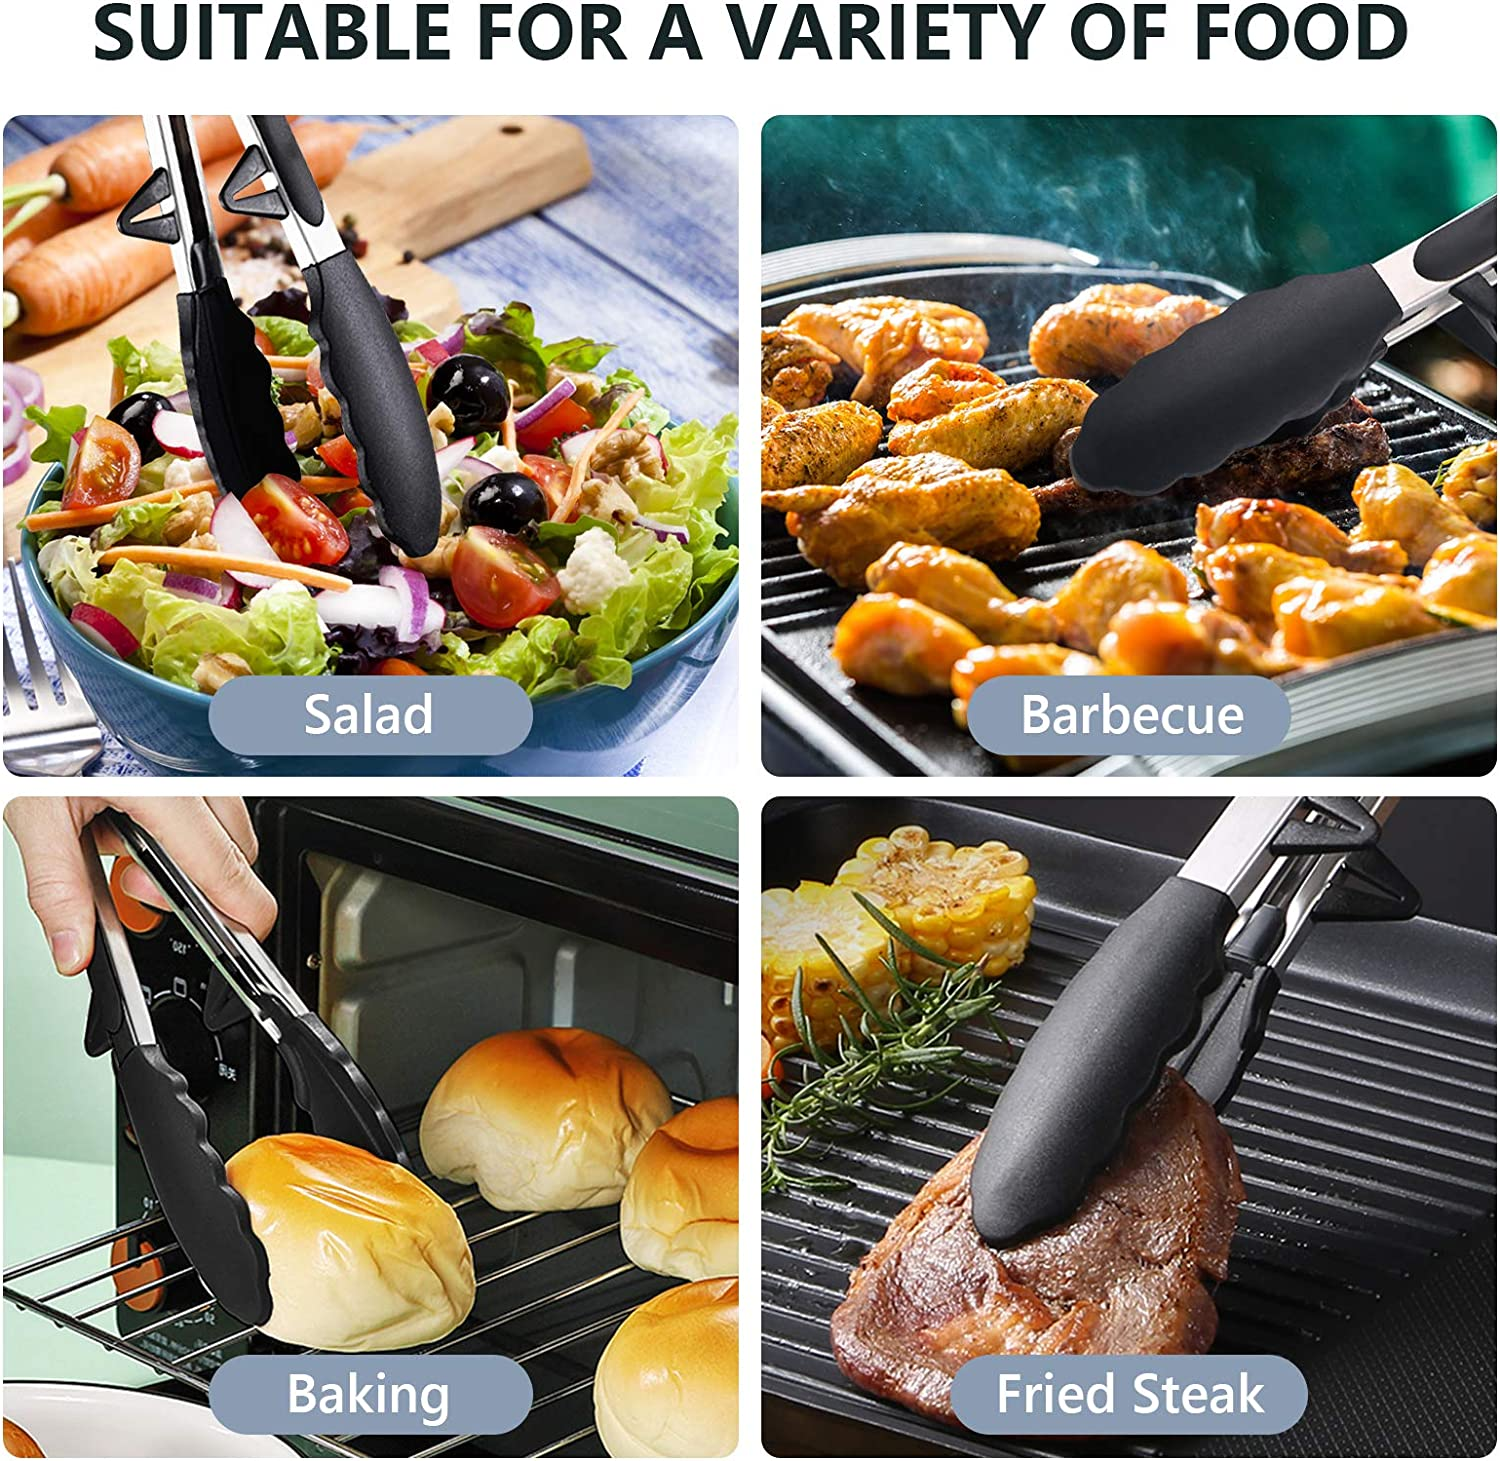 Non-stick Premium Silicone Tips /& Locking Stainless Steel Tongs High Heat Resistant Dishwasher Safe Set 4 Packs for Cooking Salad BBQ Grilling 13 Inch//10 Inch Kitchen Tongs for Cooking Black